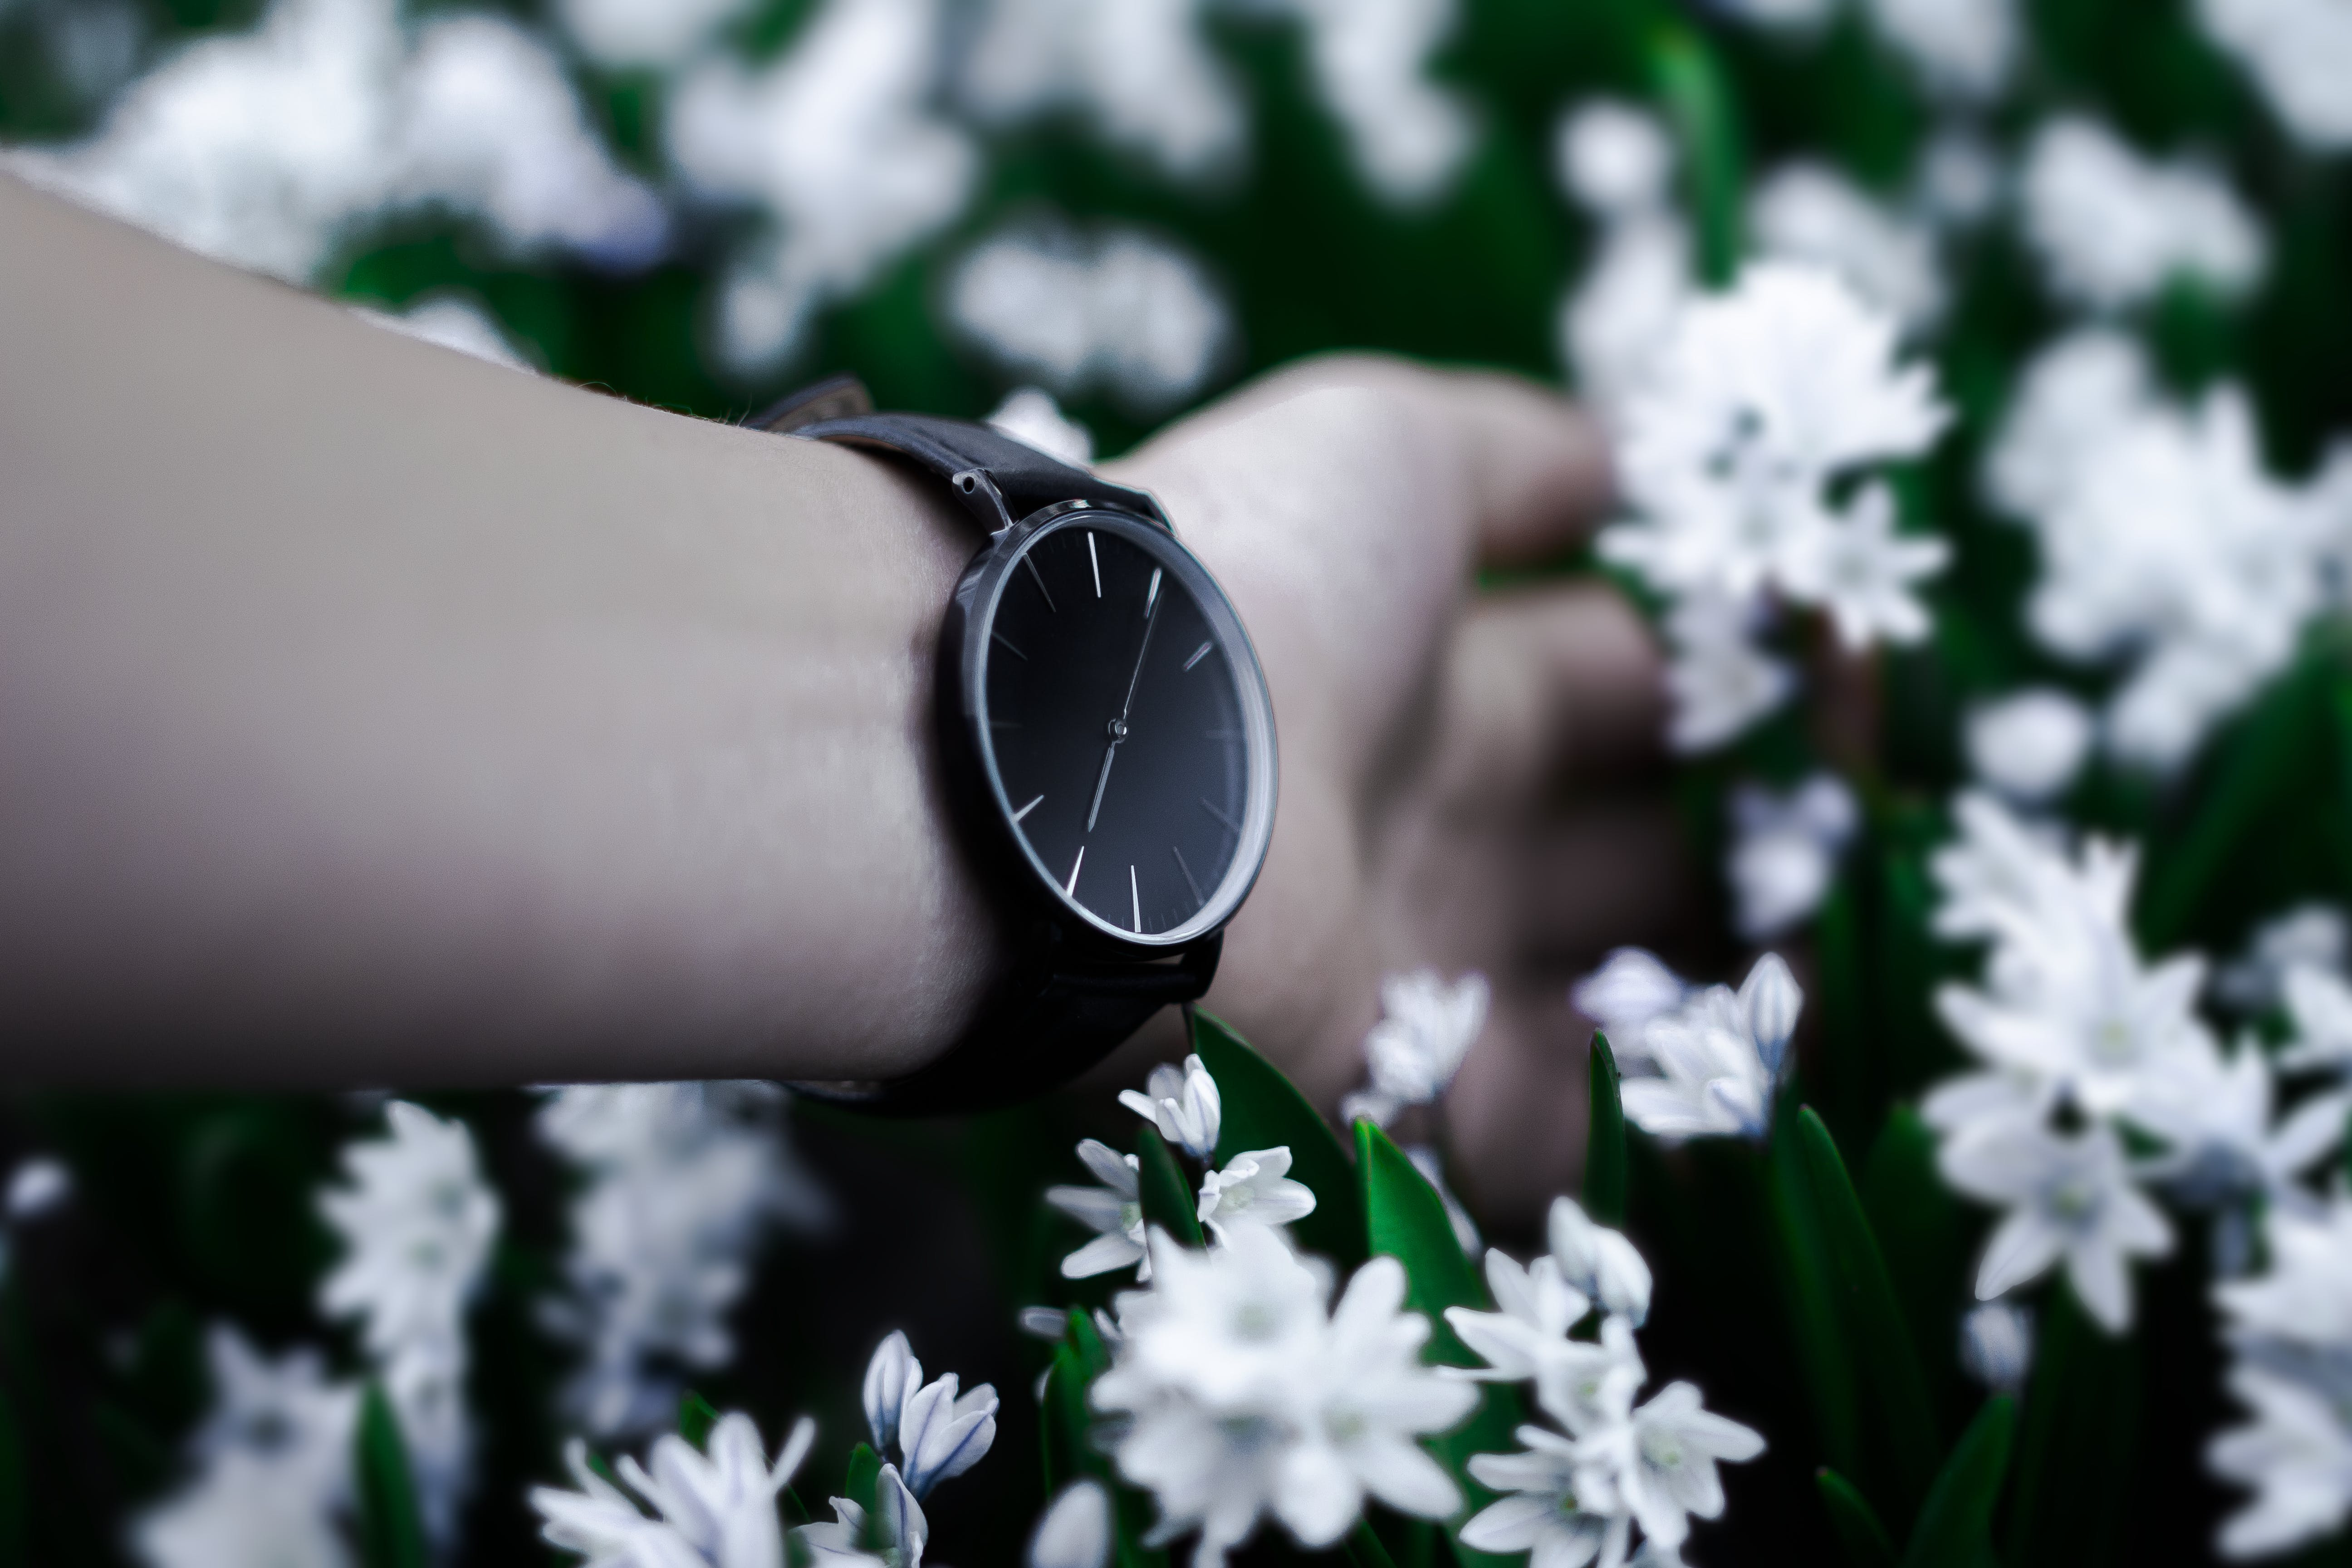 Person in Black Analog Watch Holding White Flowers